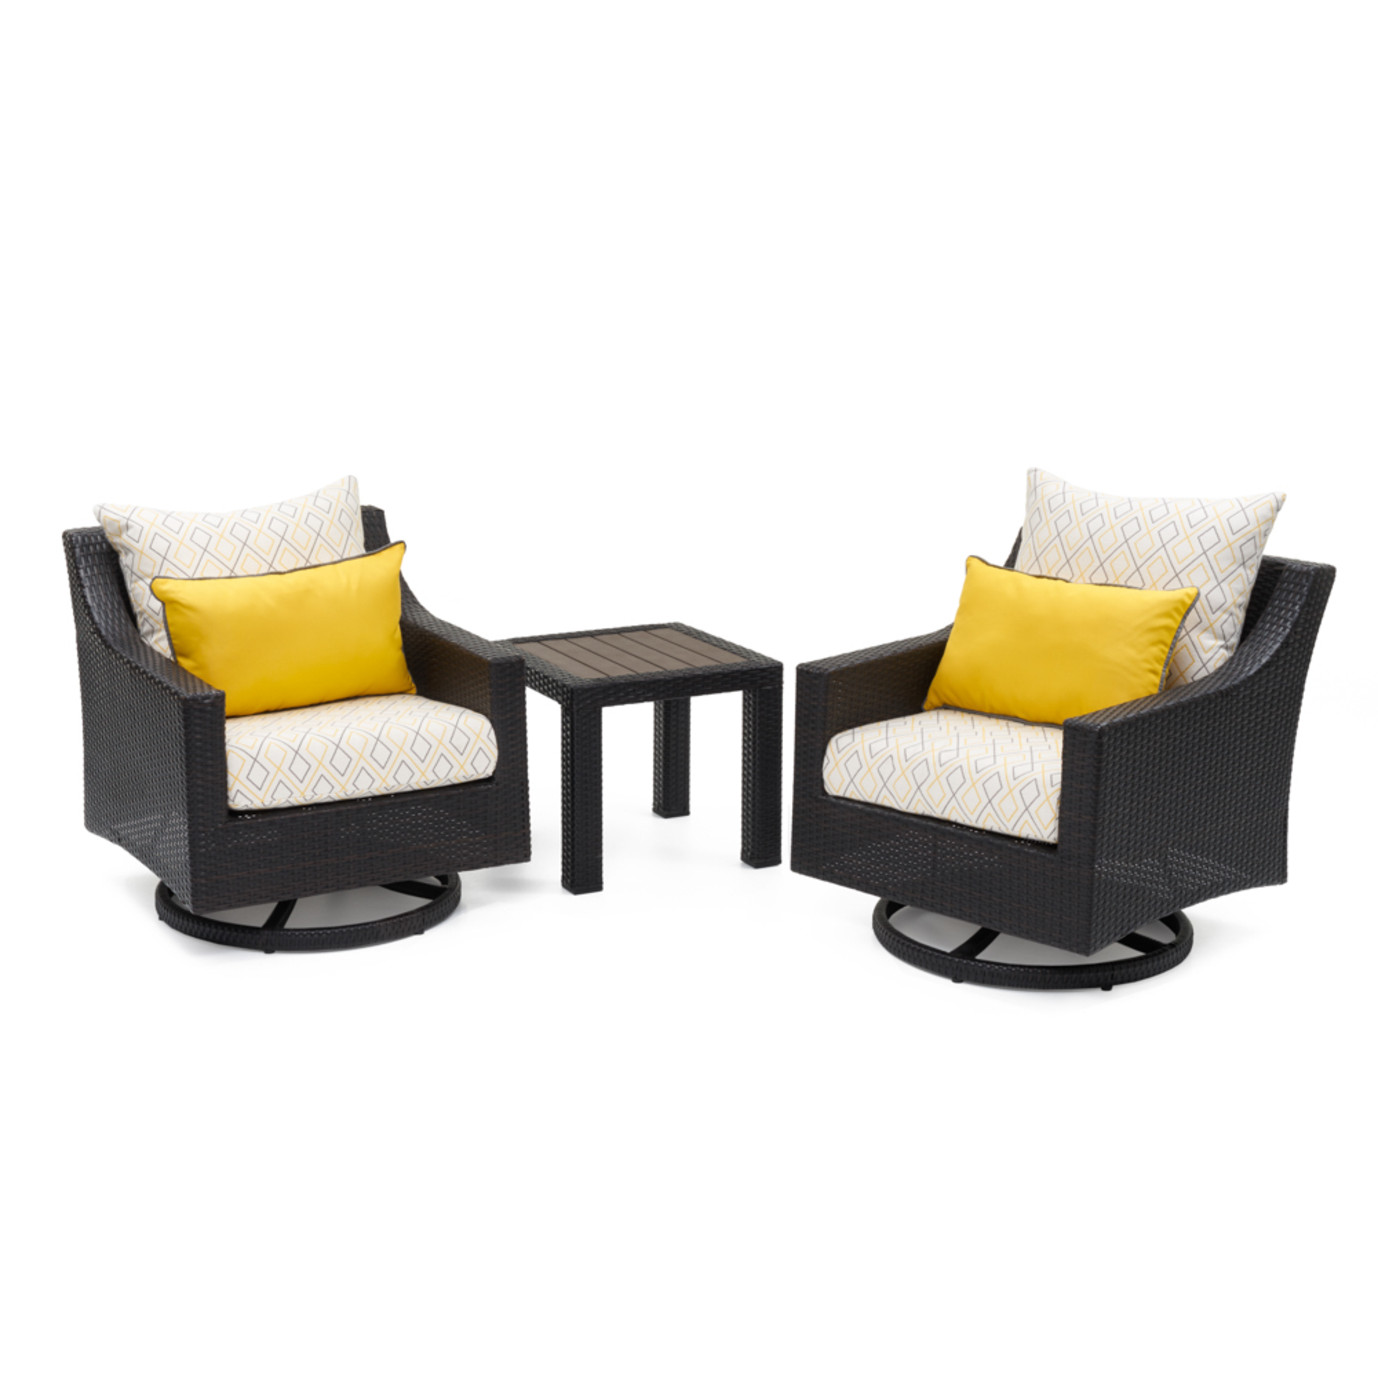 Deco™ Deluxe Motion Club Chairs & Side Table - Sunflower Yellow